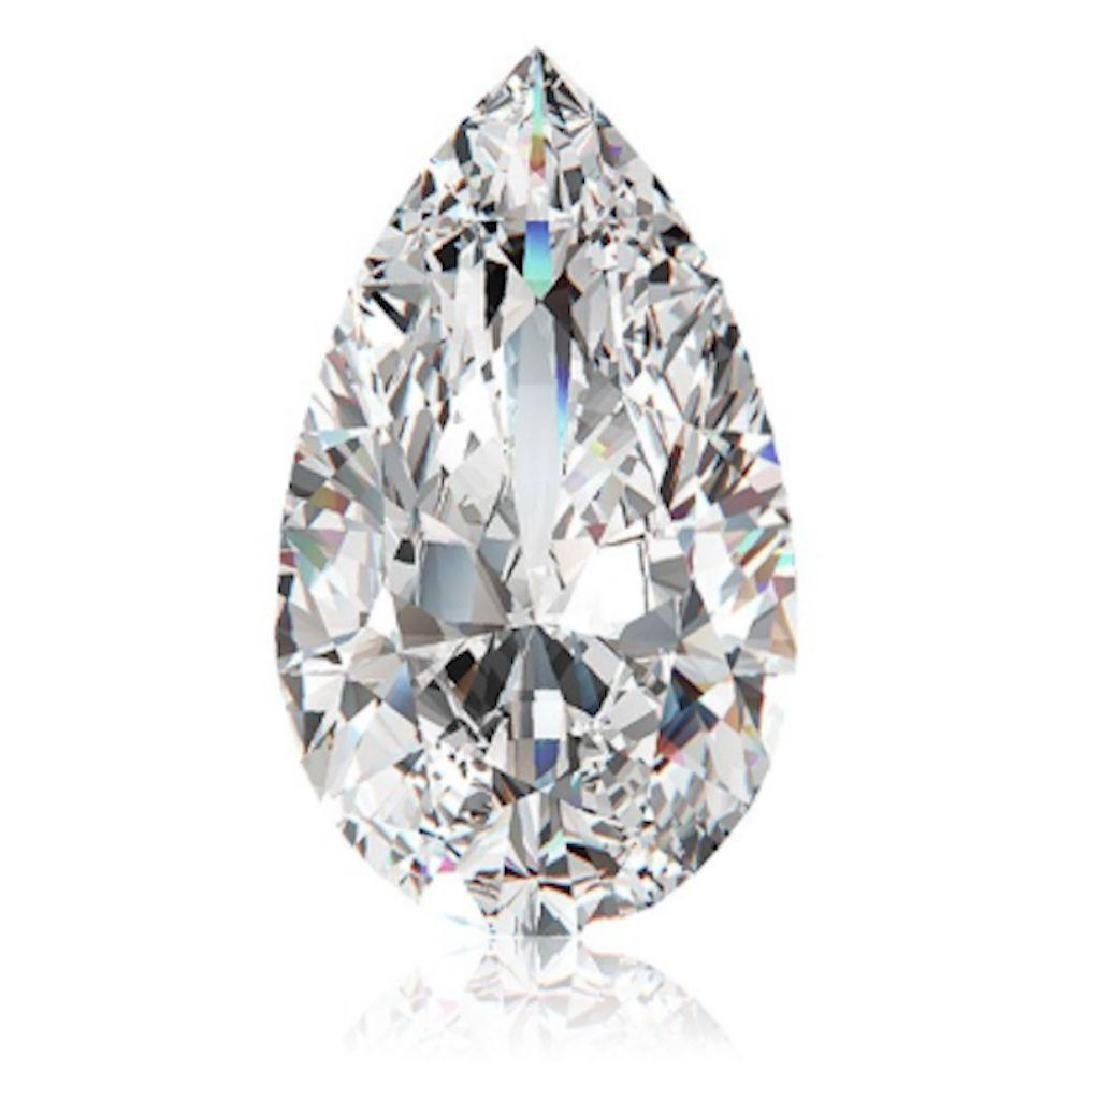 10.21cts Pear Cut Bianco Diamond 6AAAAAA Loose Gemstone